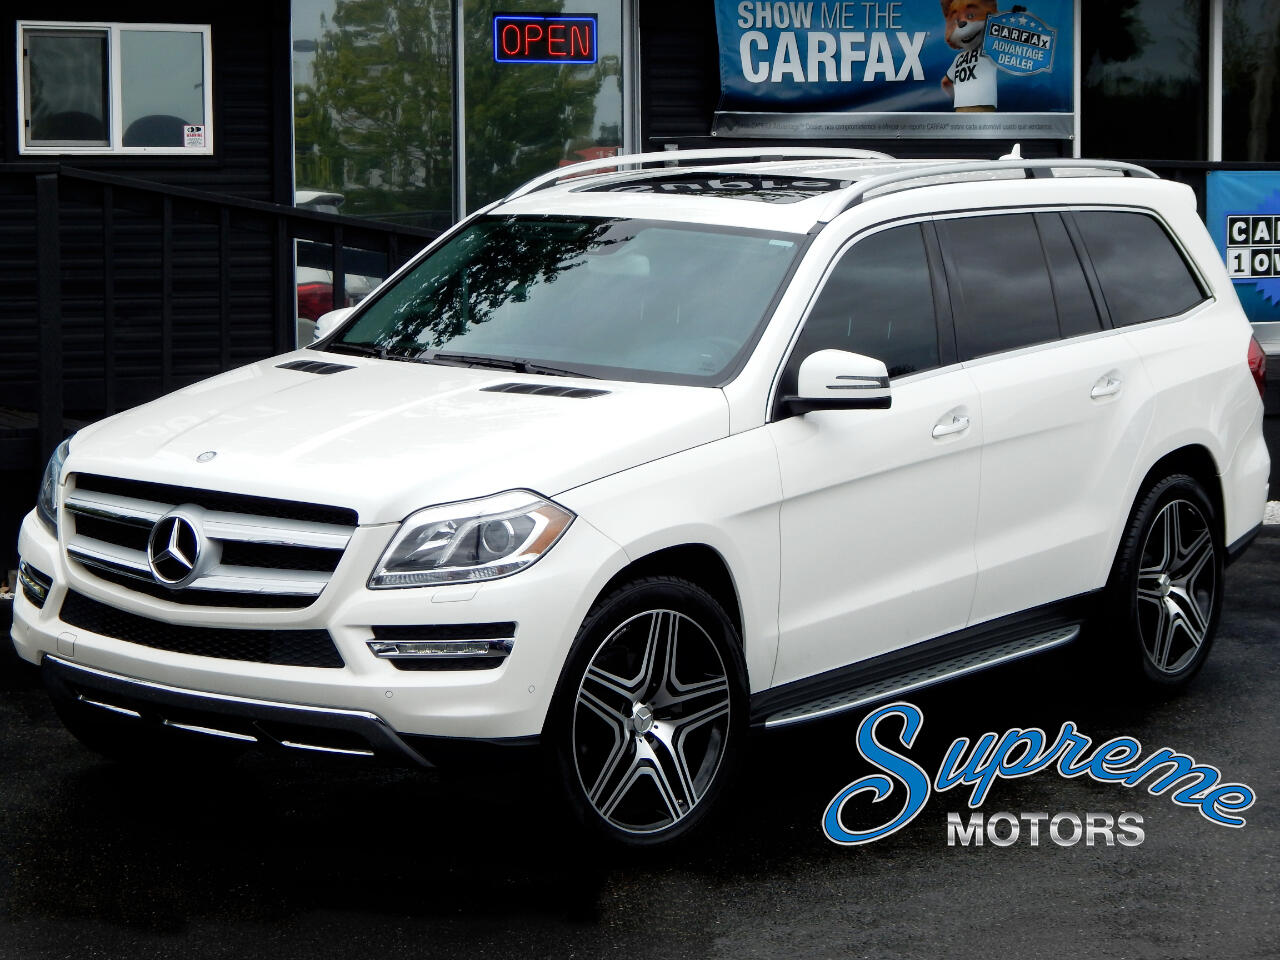 2015 Mercedes-Benz GL-Class GL450 4Matic w/AMG Sport Pkg + White on Black